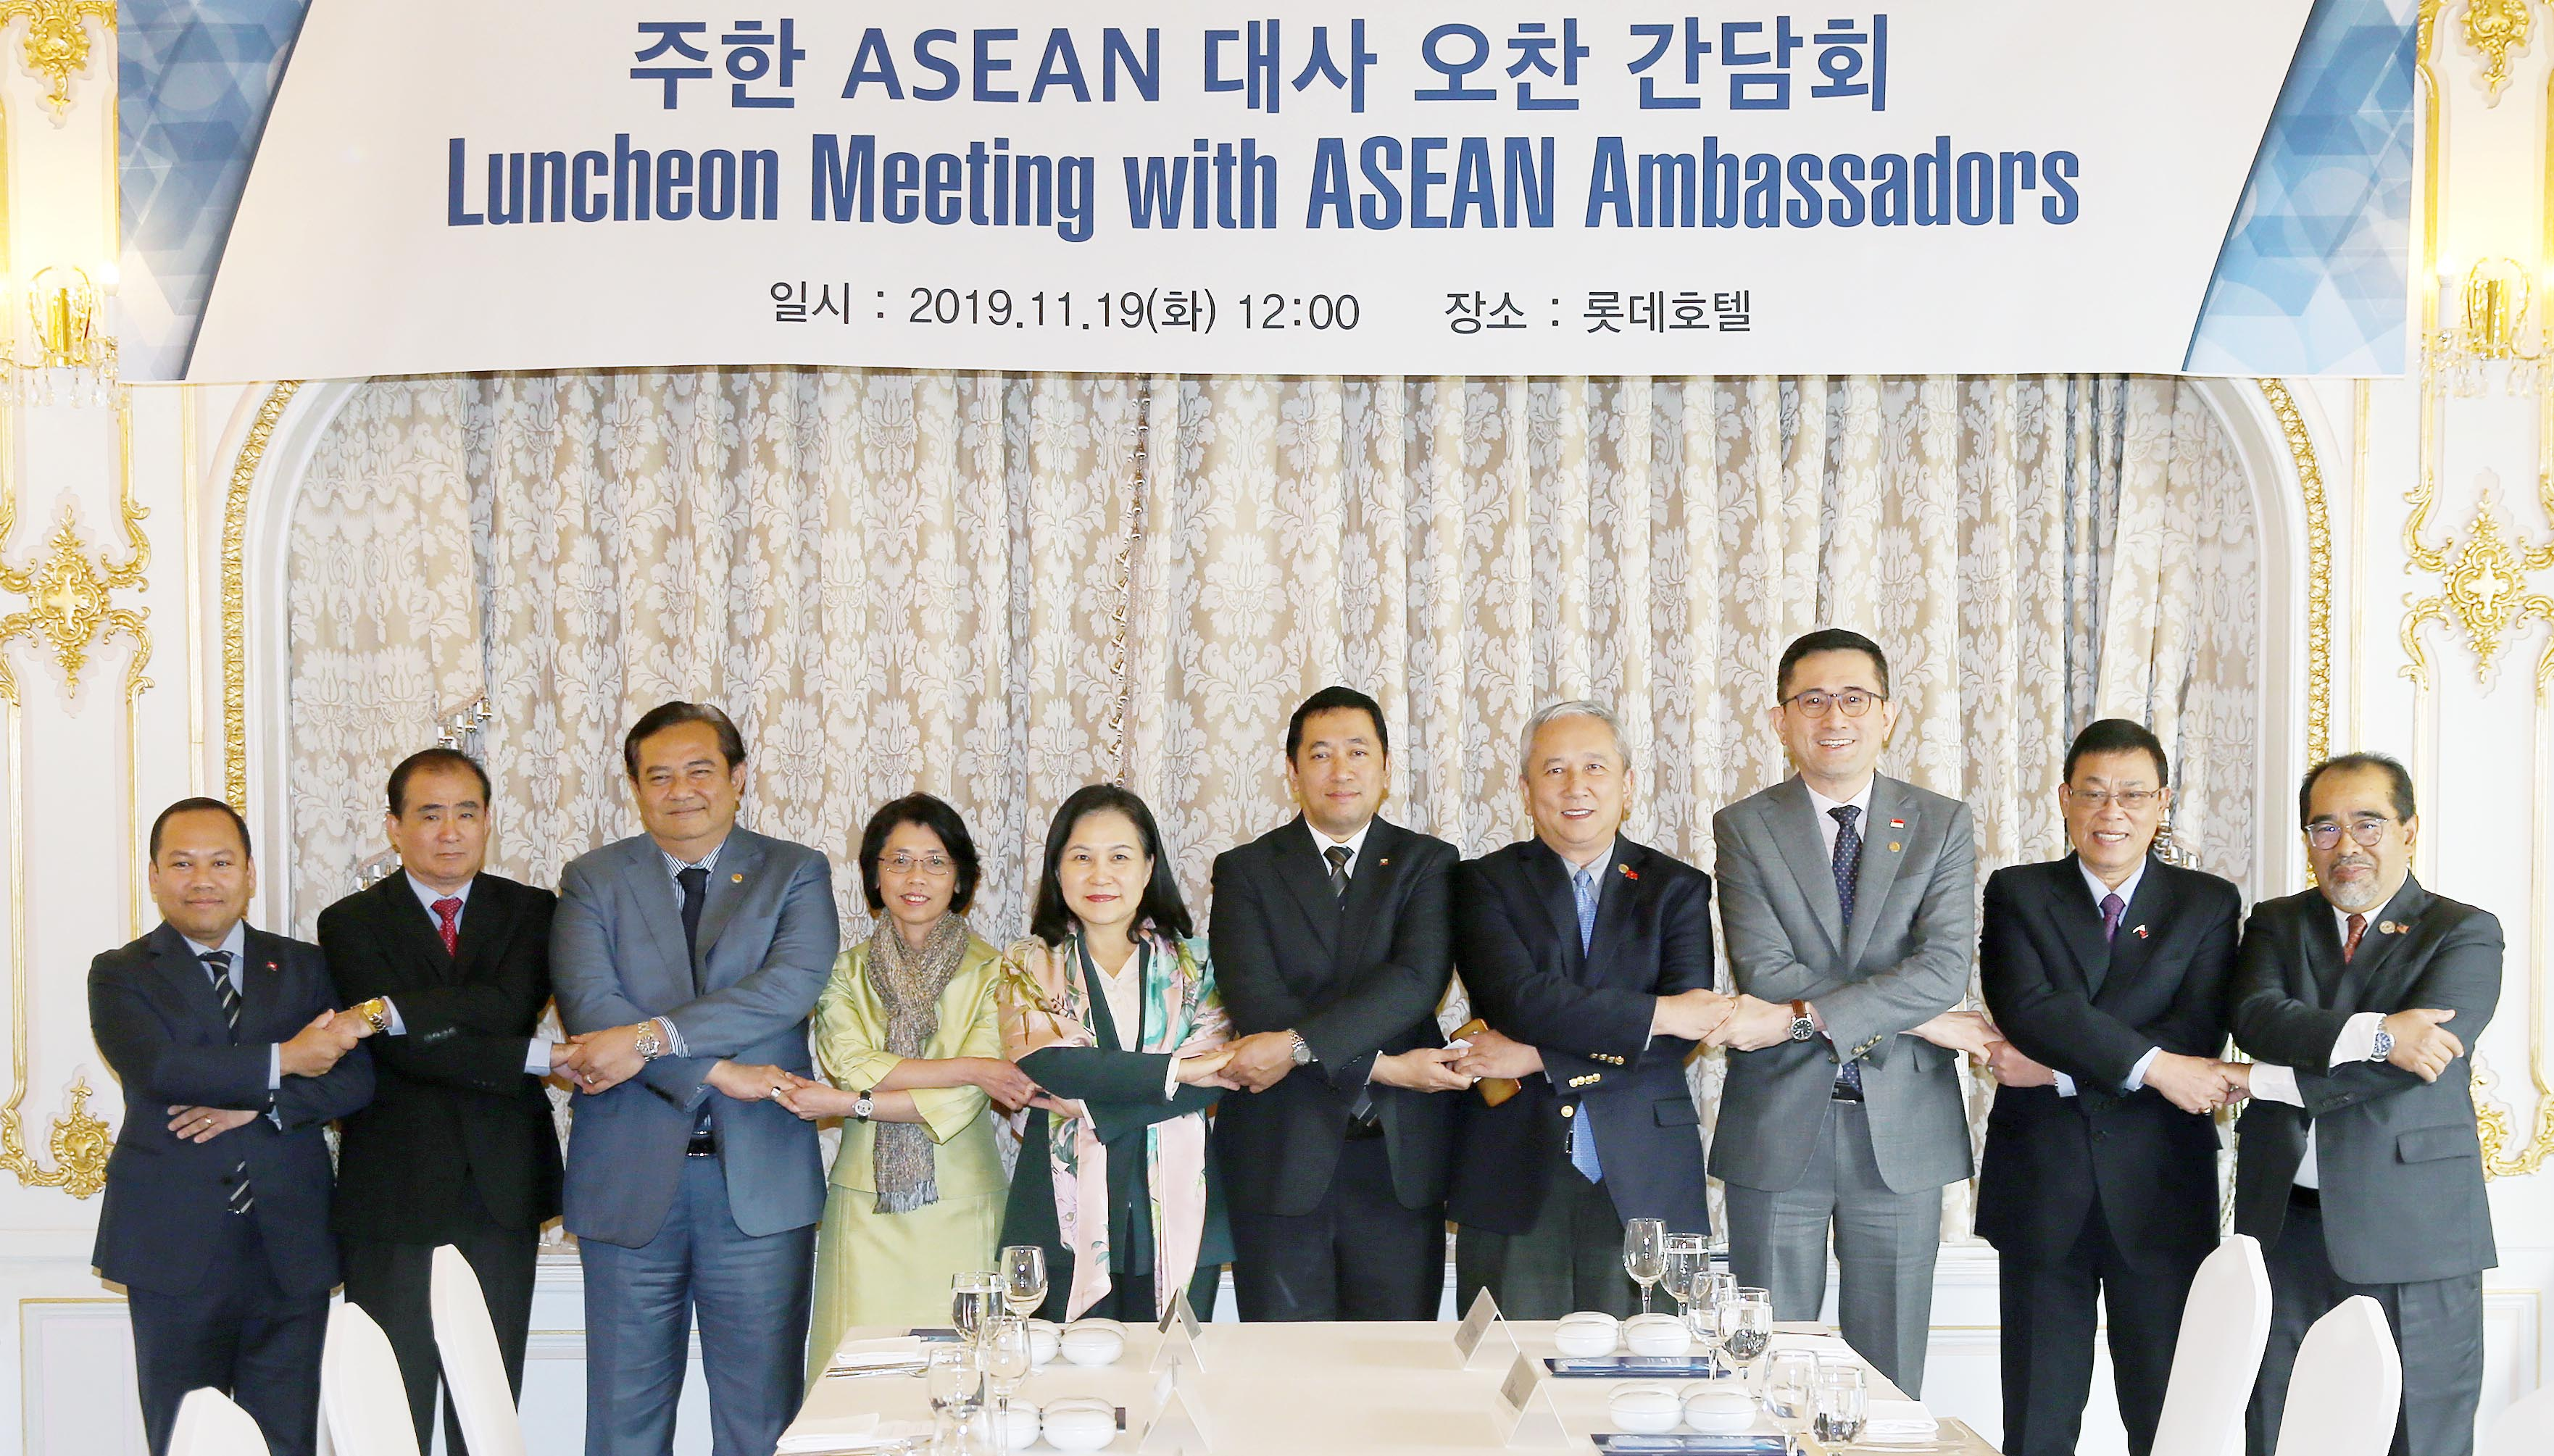 Trade Minister Yoo meets with ASEAN ambassadors